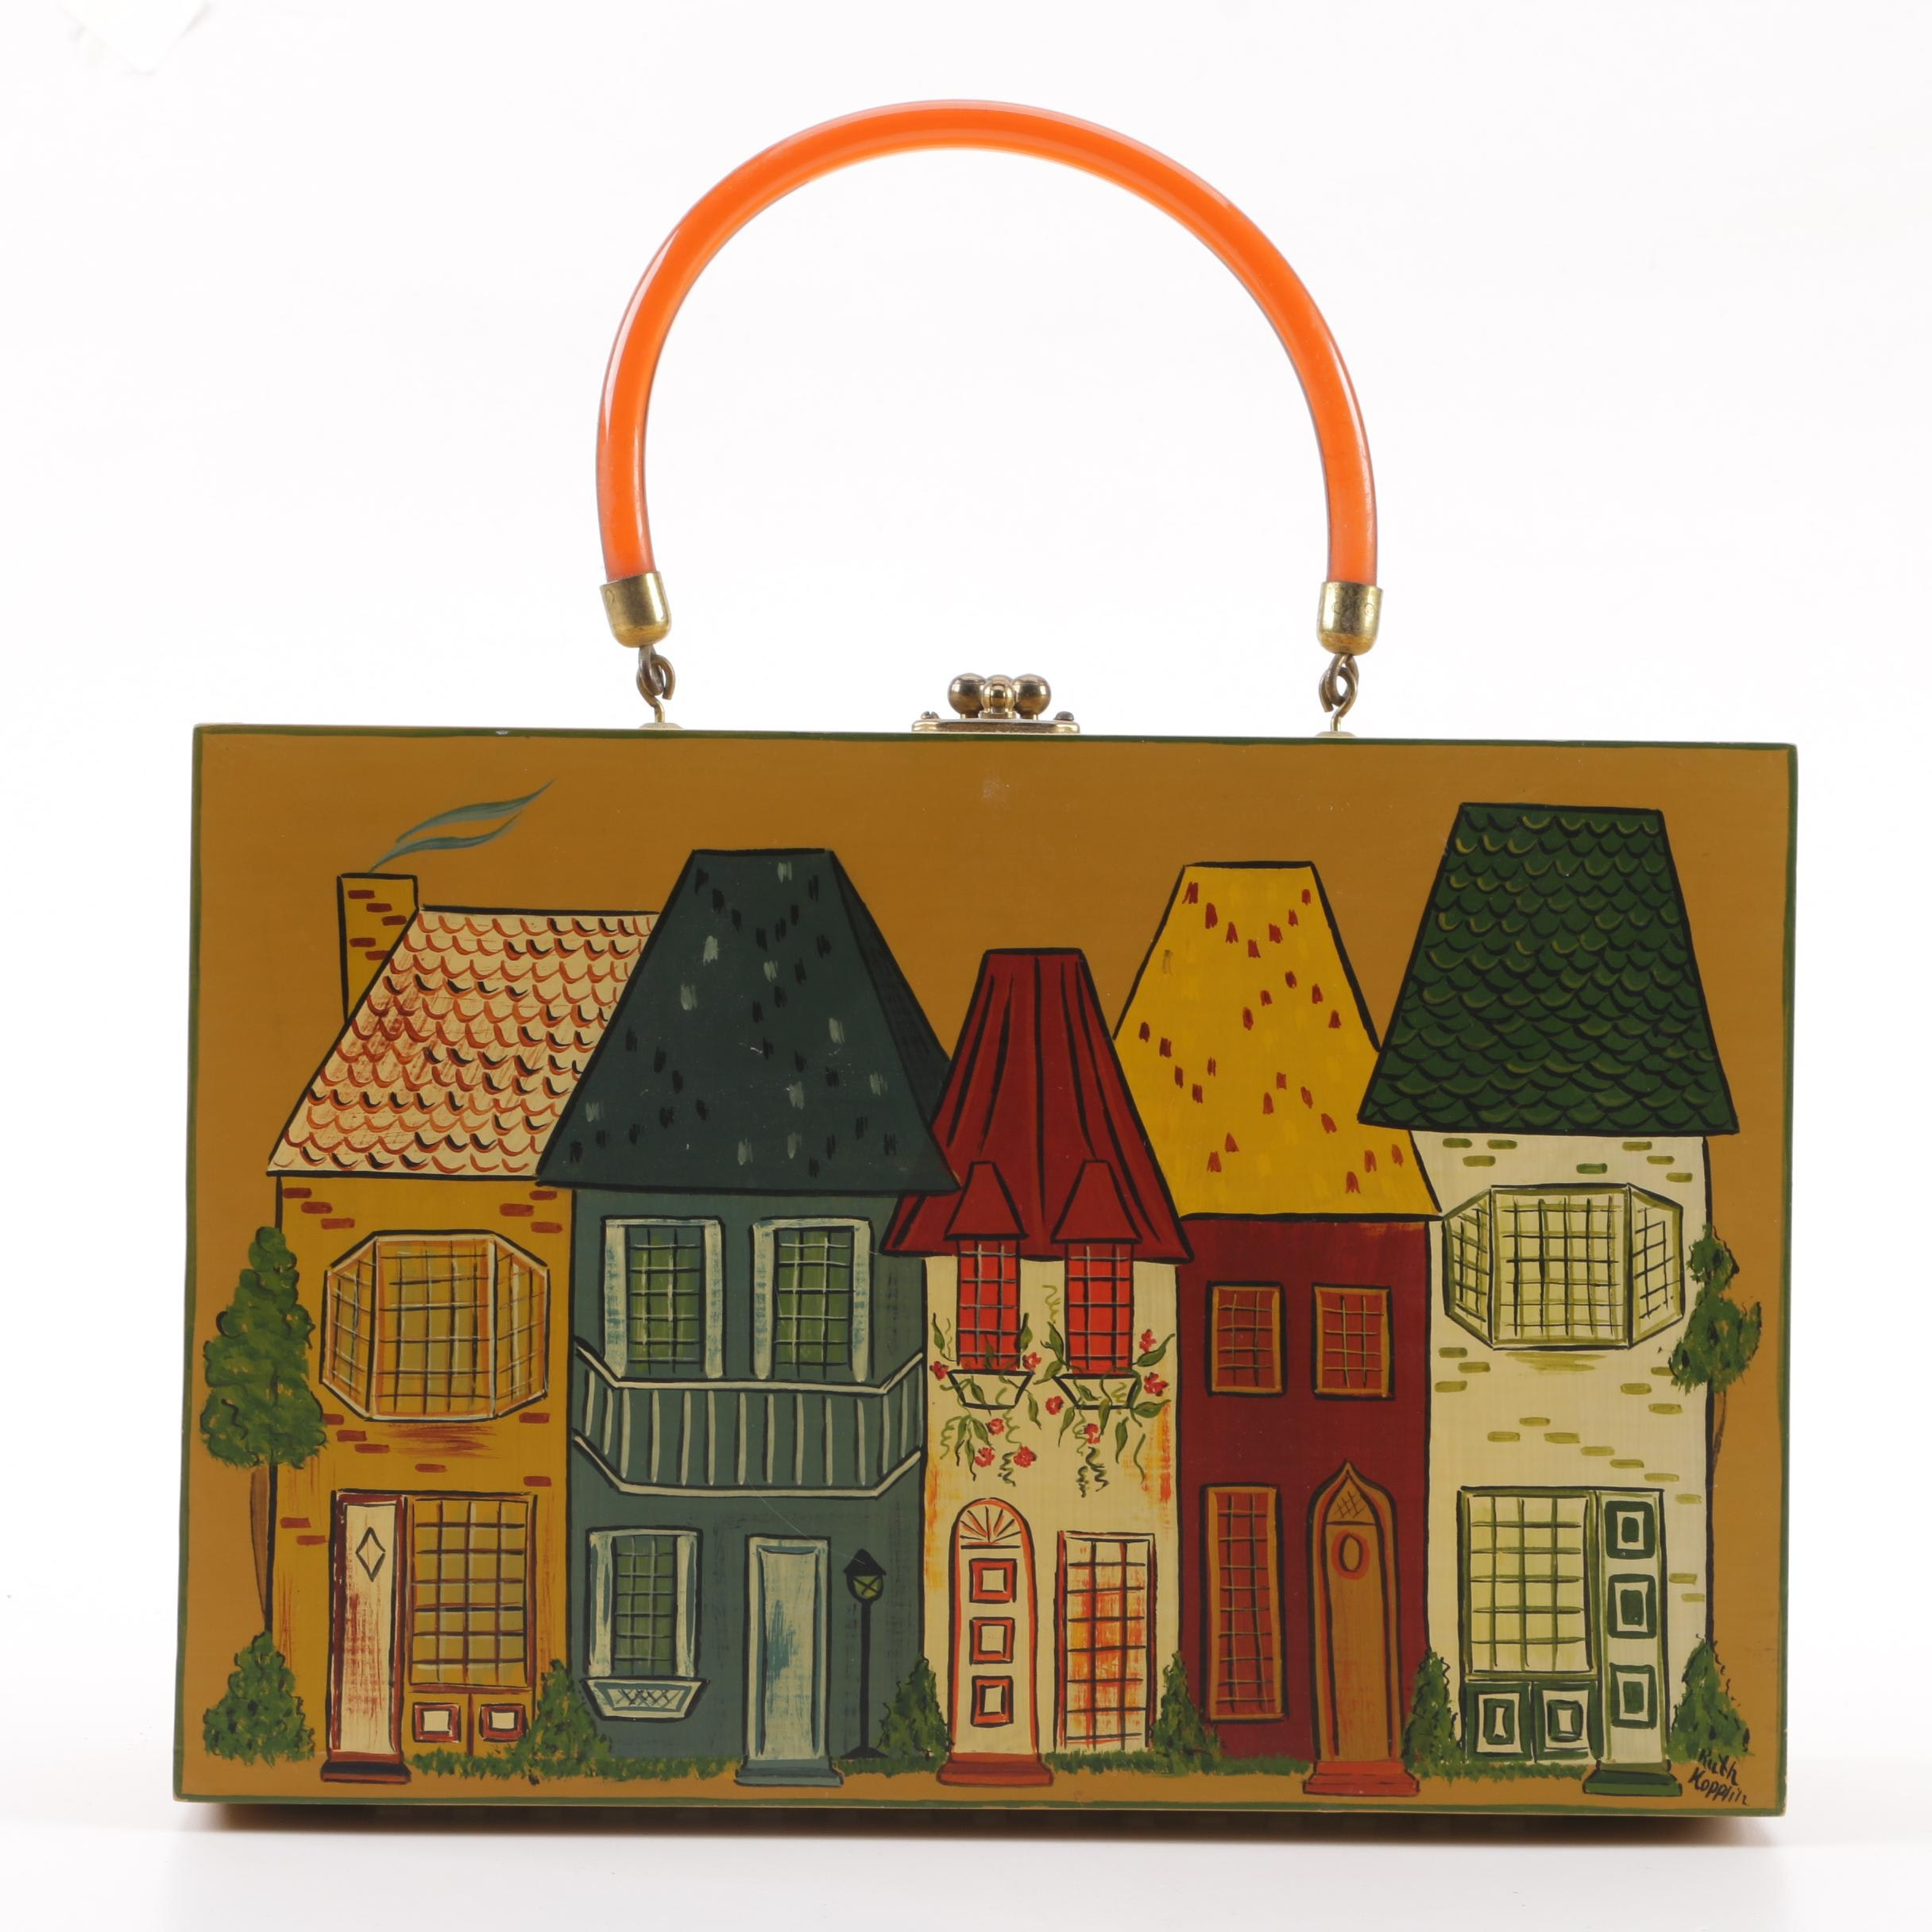 Vintage Dutch Style House Motif Hand-Painted Handbag Signed by Artist